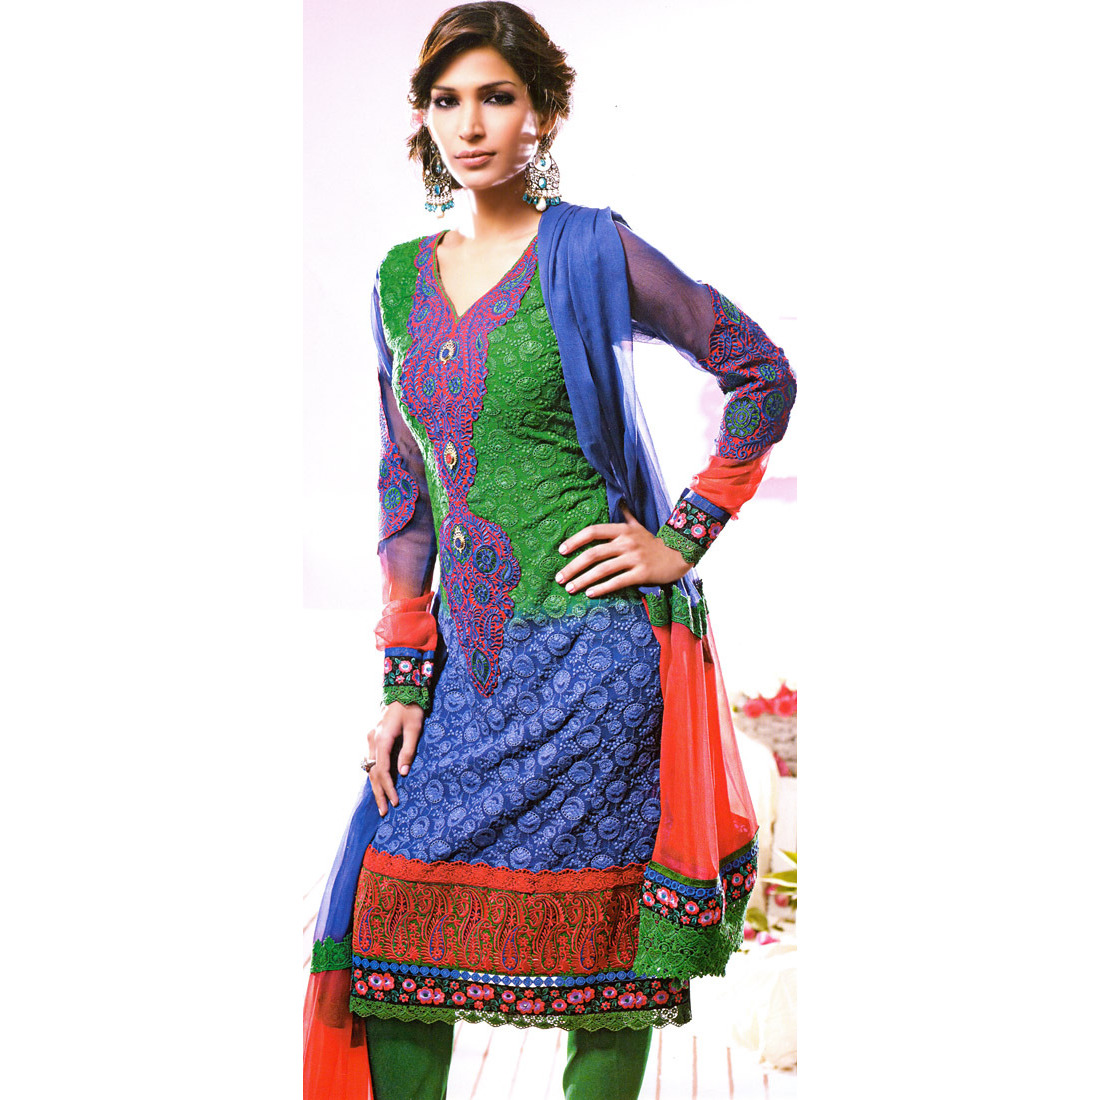 Tr-Color Choodidaar Kameez Suit with Patchwork and Self-Colored Embroidery All-Over